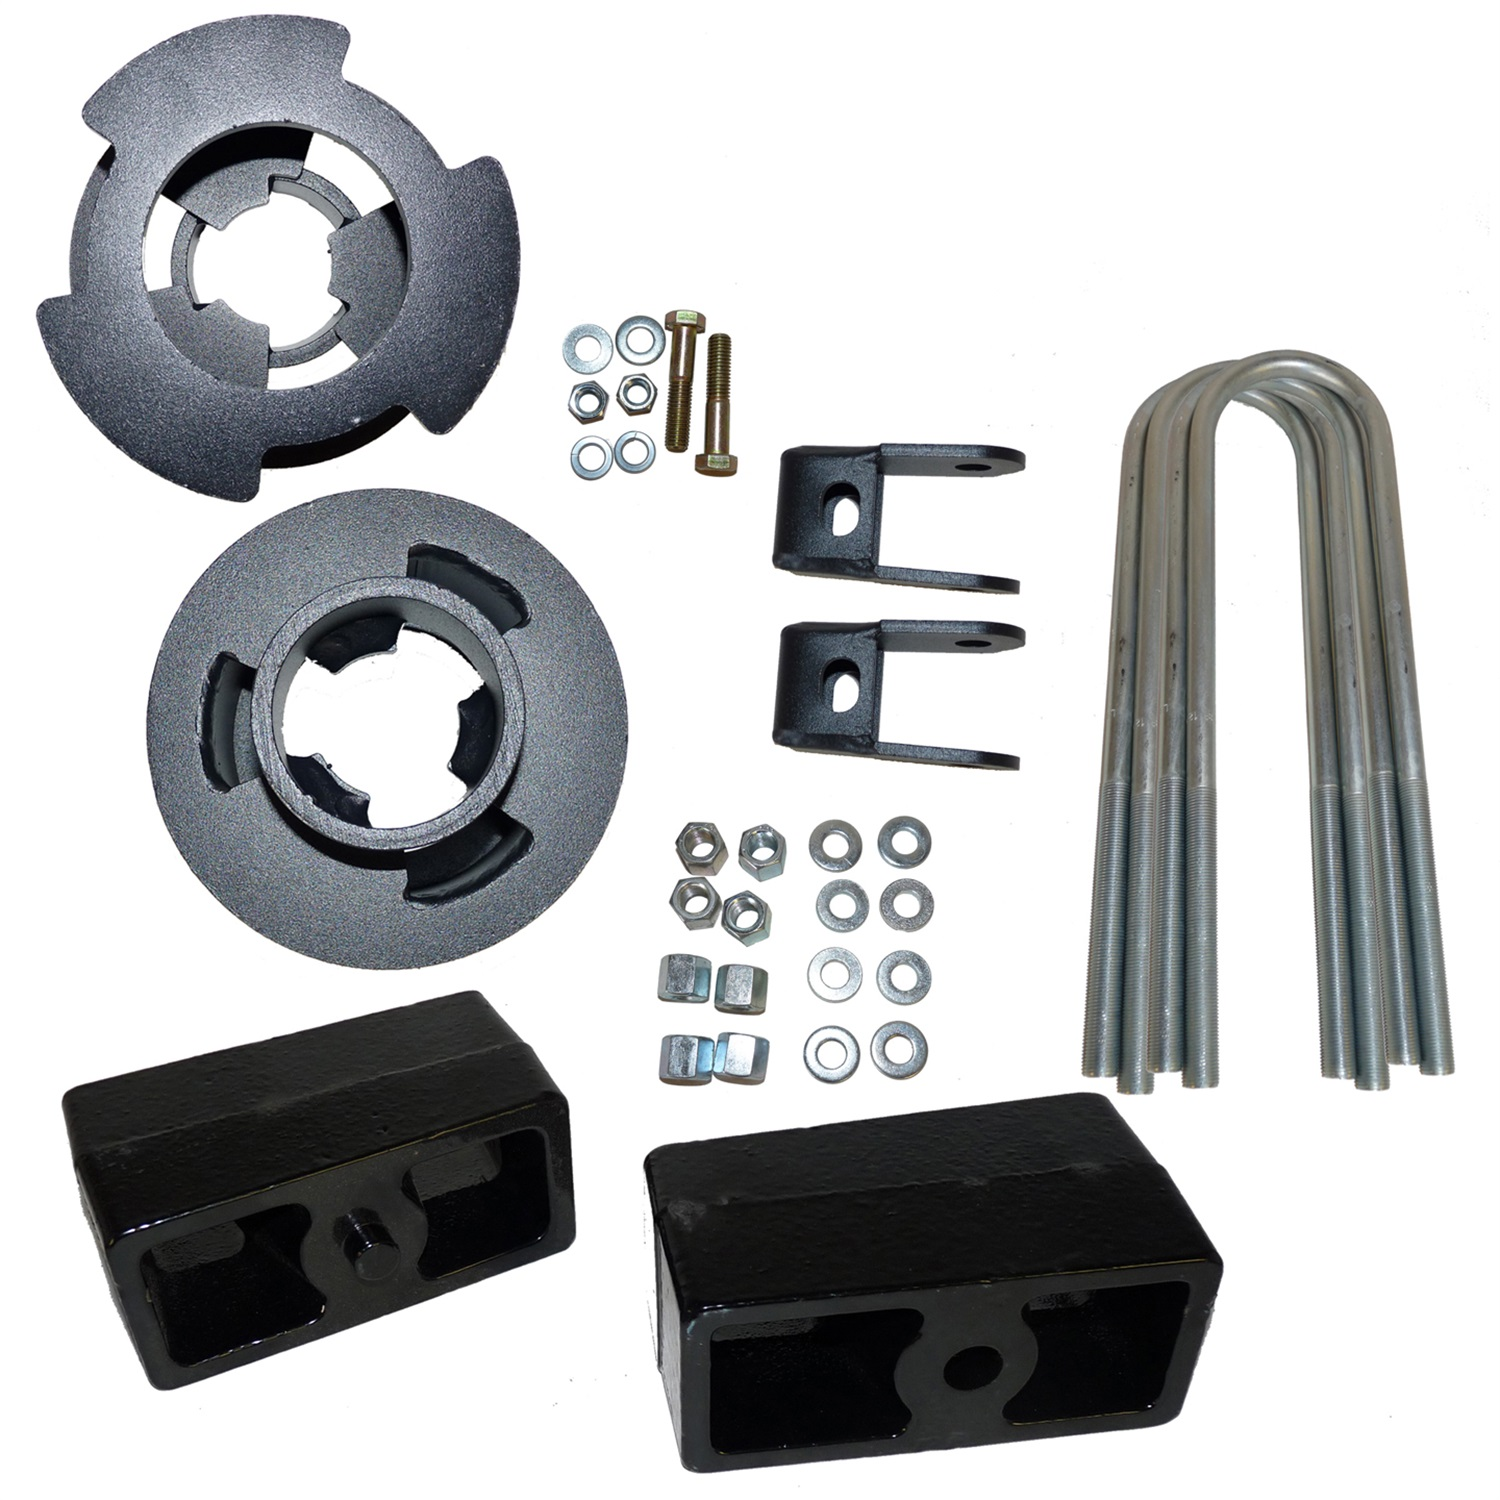 Traxda 108035 Lift Kit Fits 05-10 F-250 Super Duty F-350 Super Duty